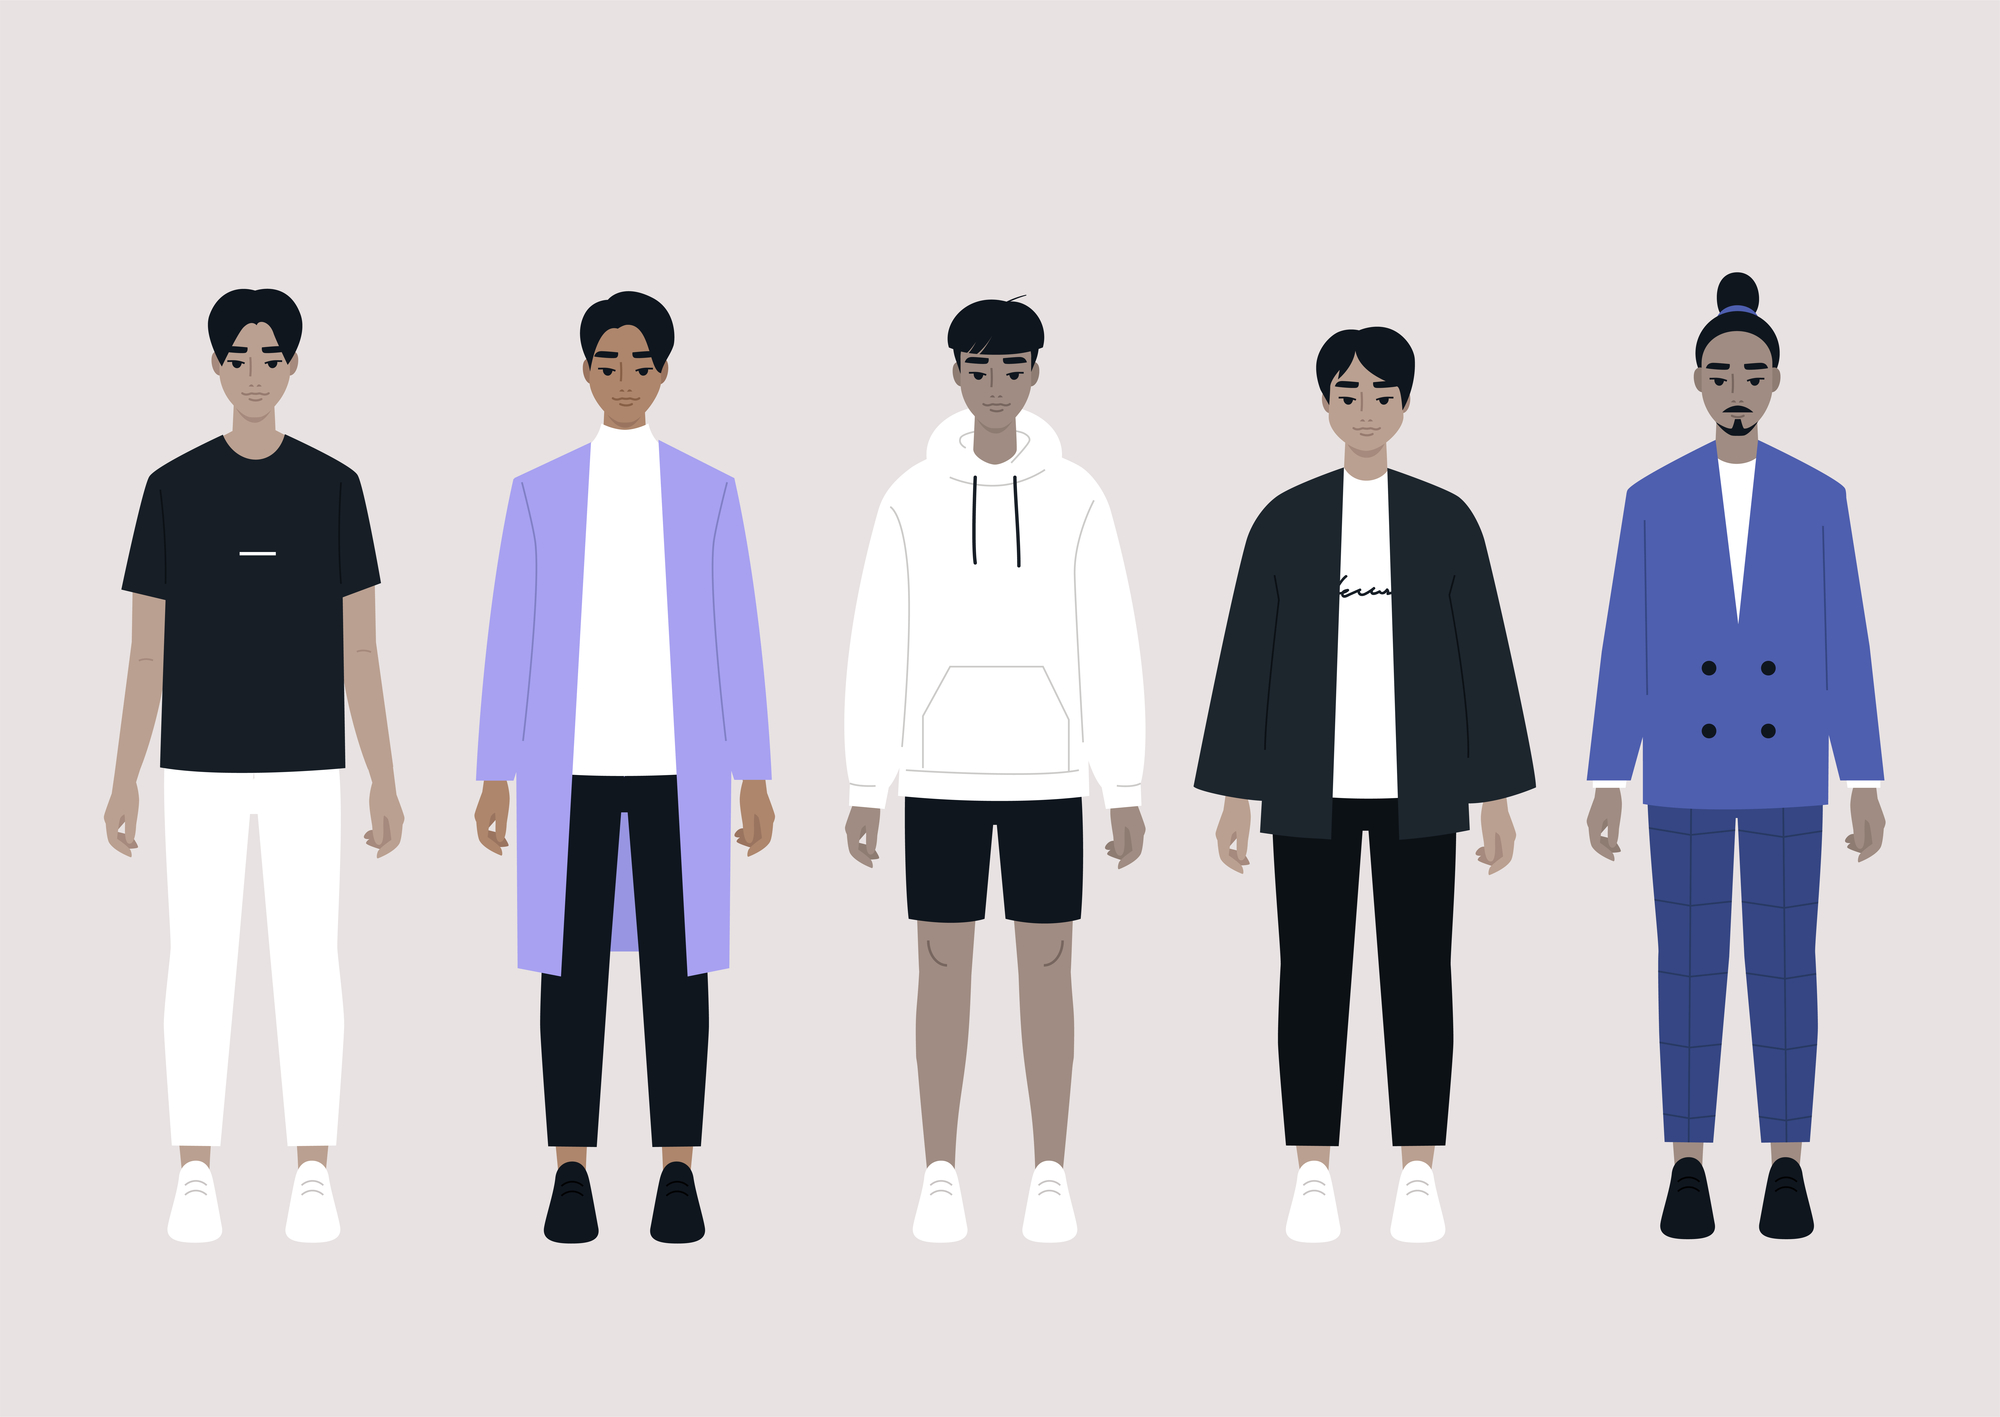 A set of Asian male characters wearing different outfits: stock illustration